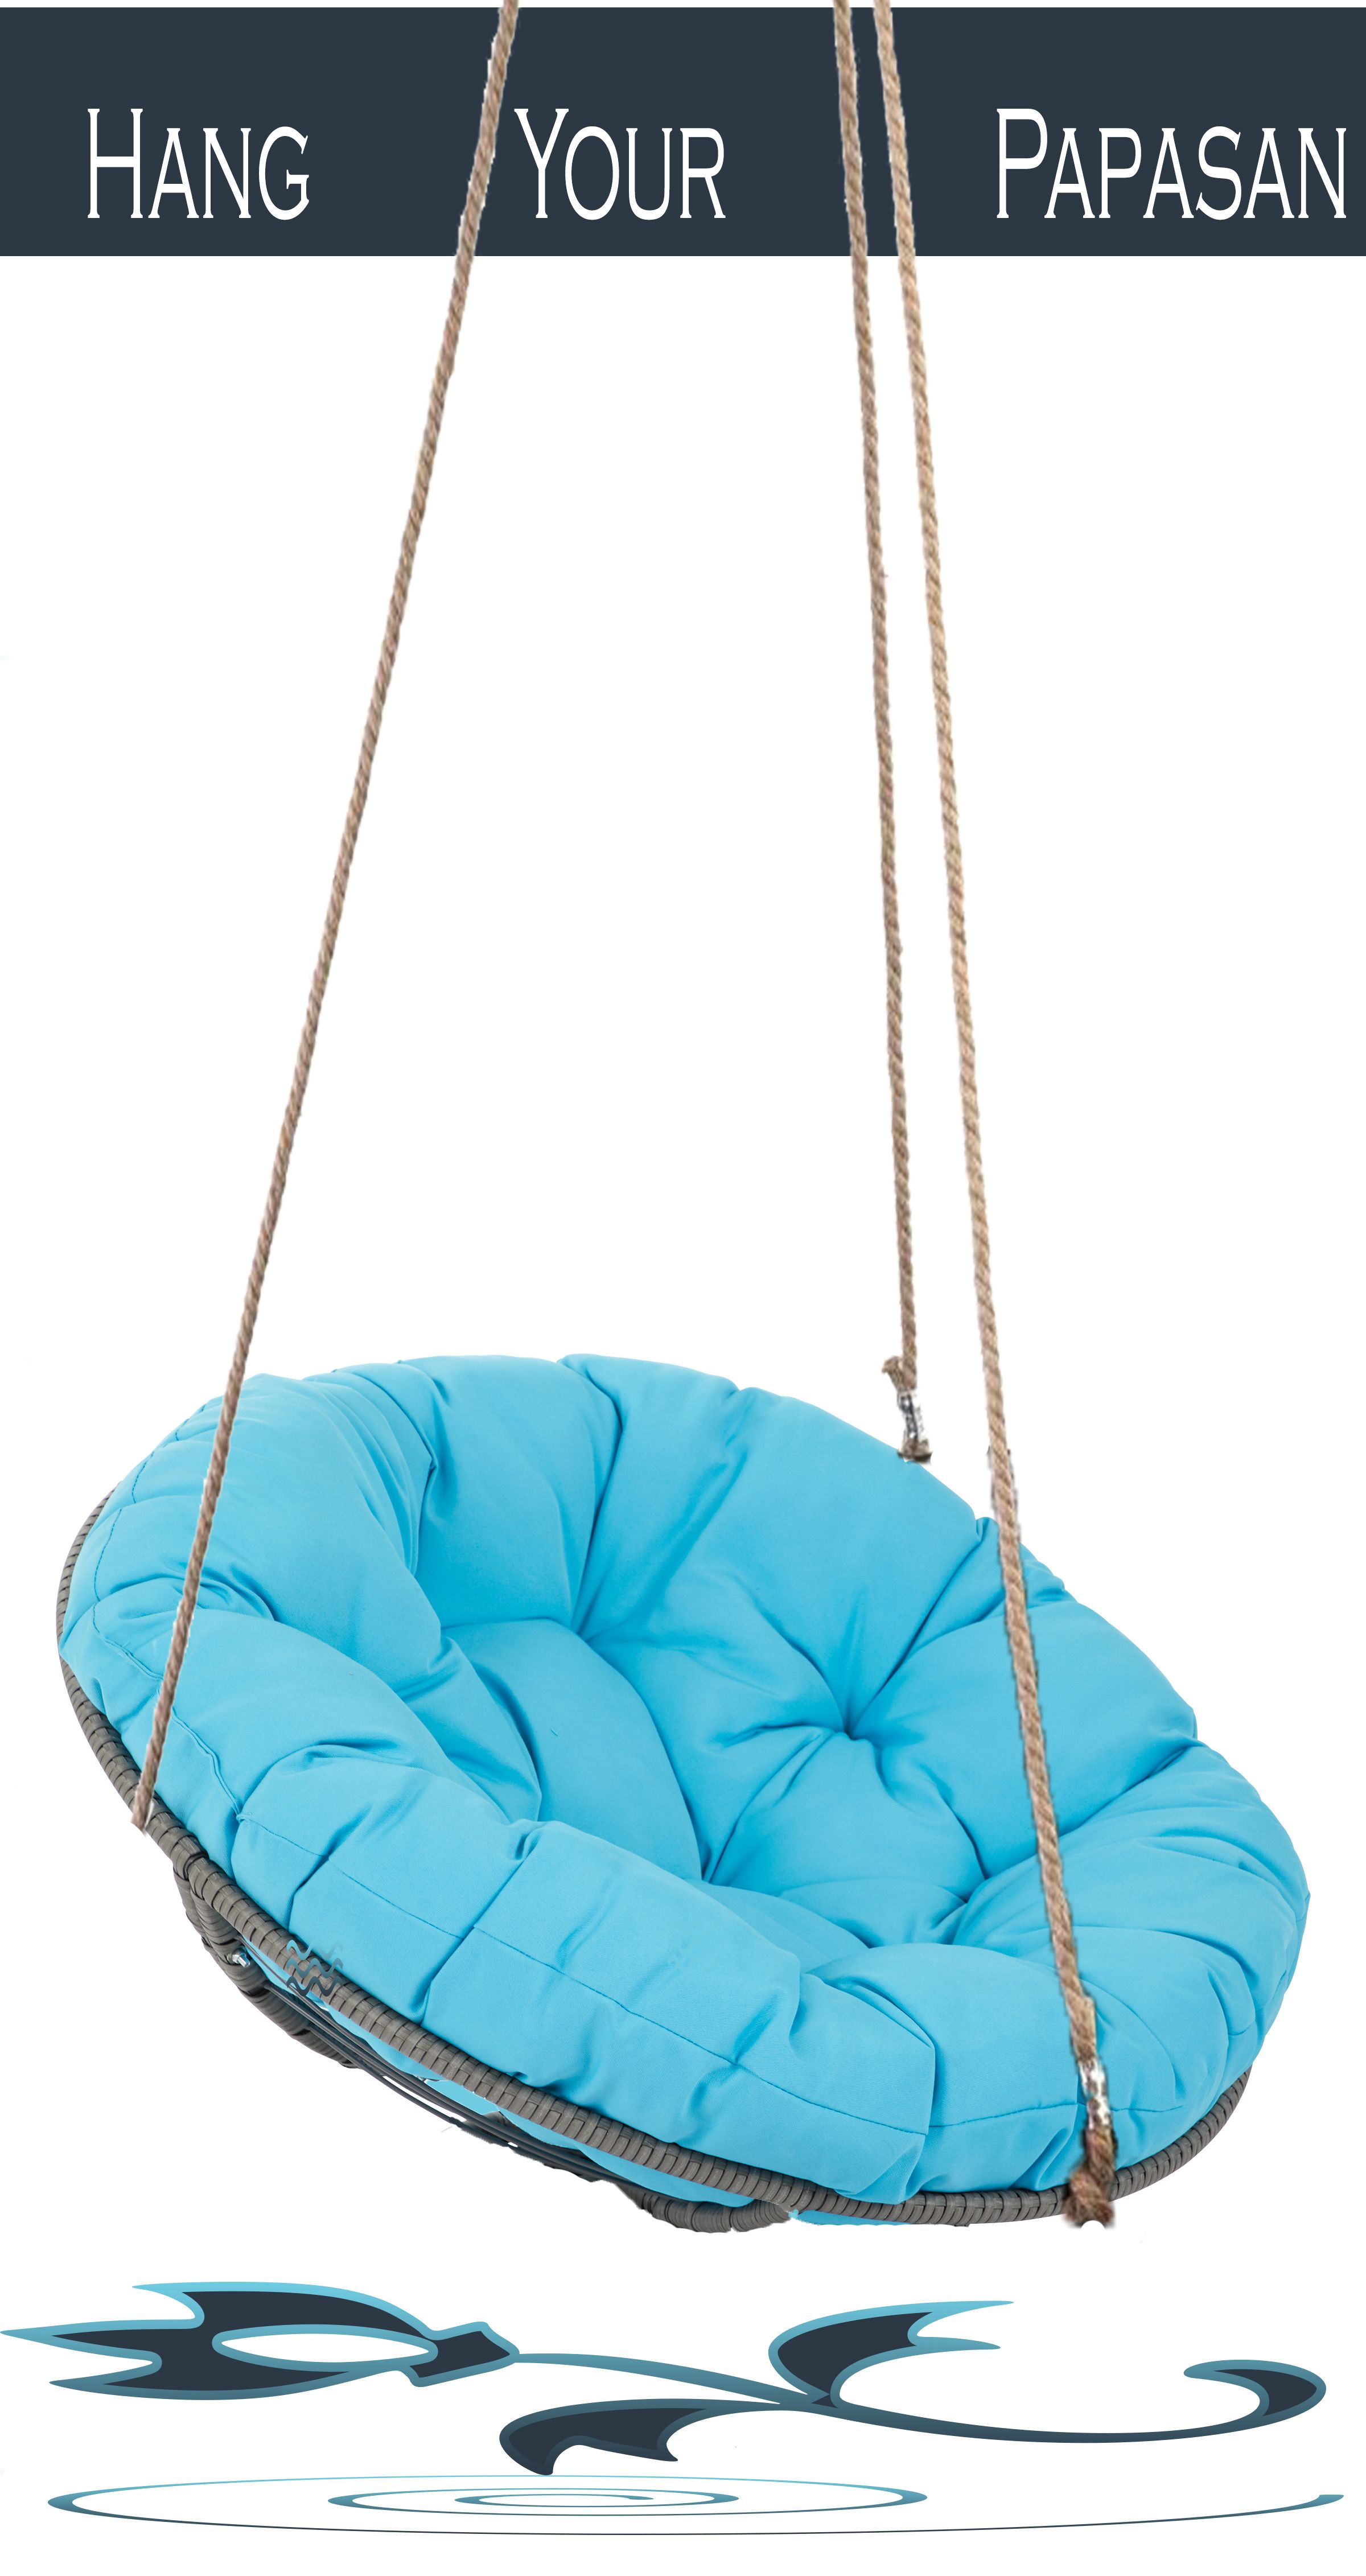 This Chair Is Called Hanging Papasan I Love It So Much The Collor Of The Thick Cushion Is Simply Beautiful Bowl Chair Hanging Chair Hanging Lounge Chair